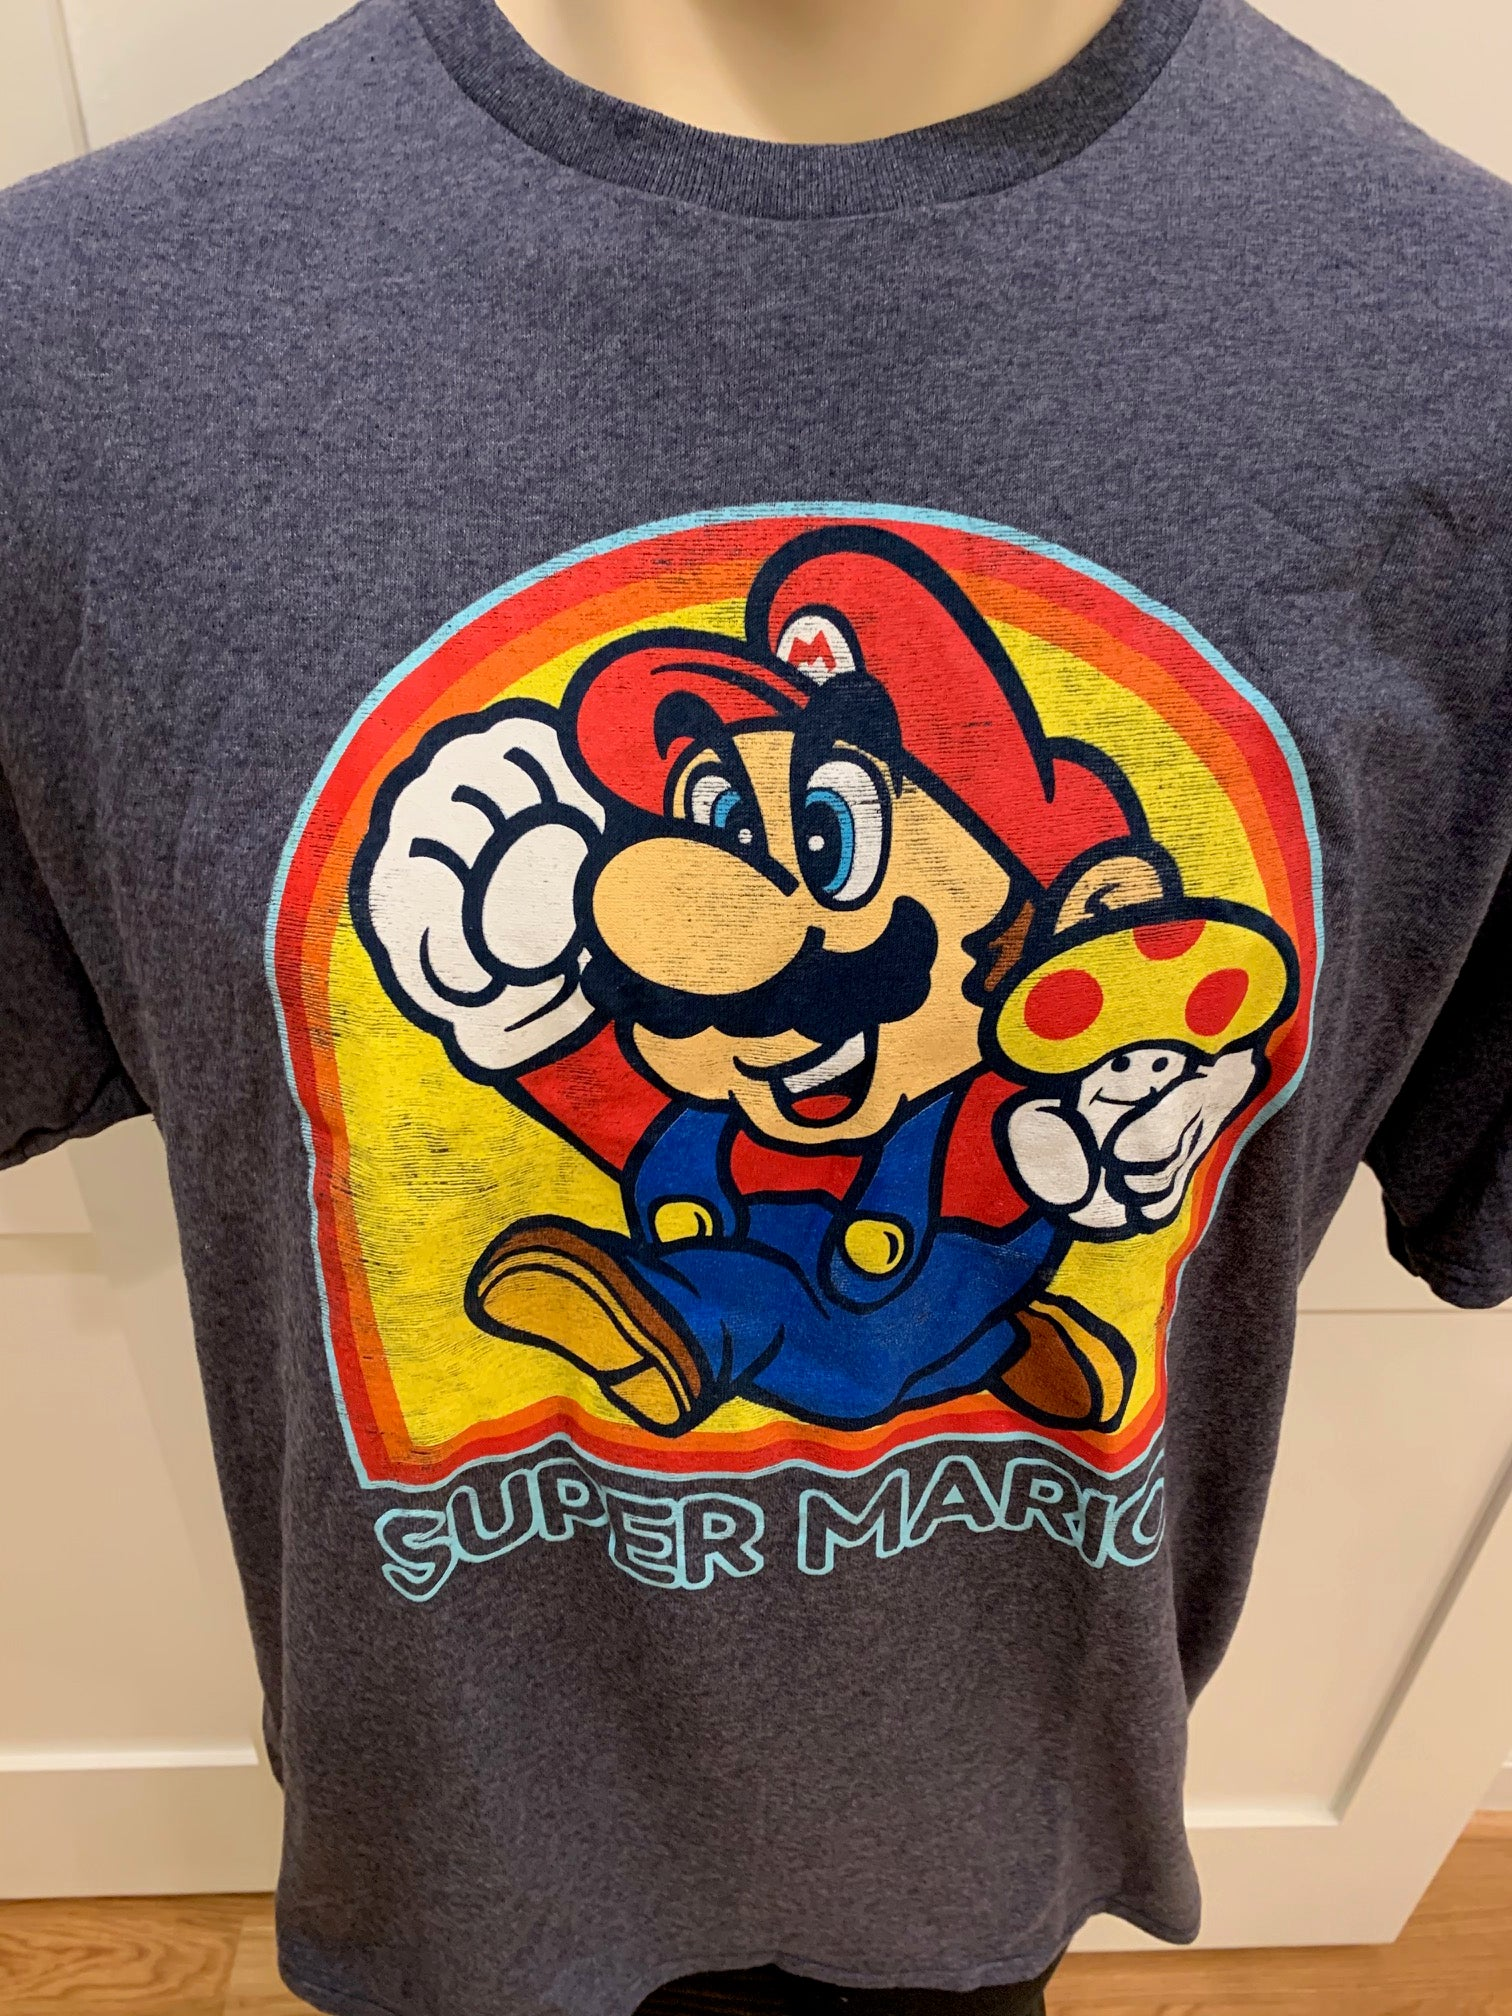 Super Mario Short Sleeve Tee Shirt (XL)